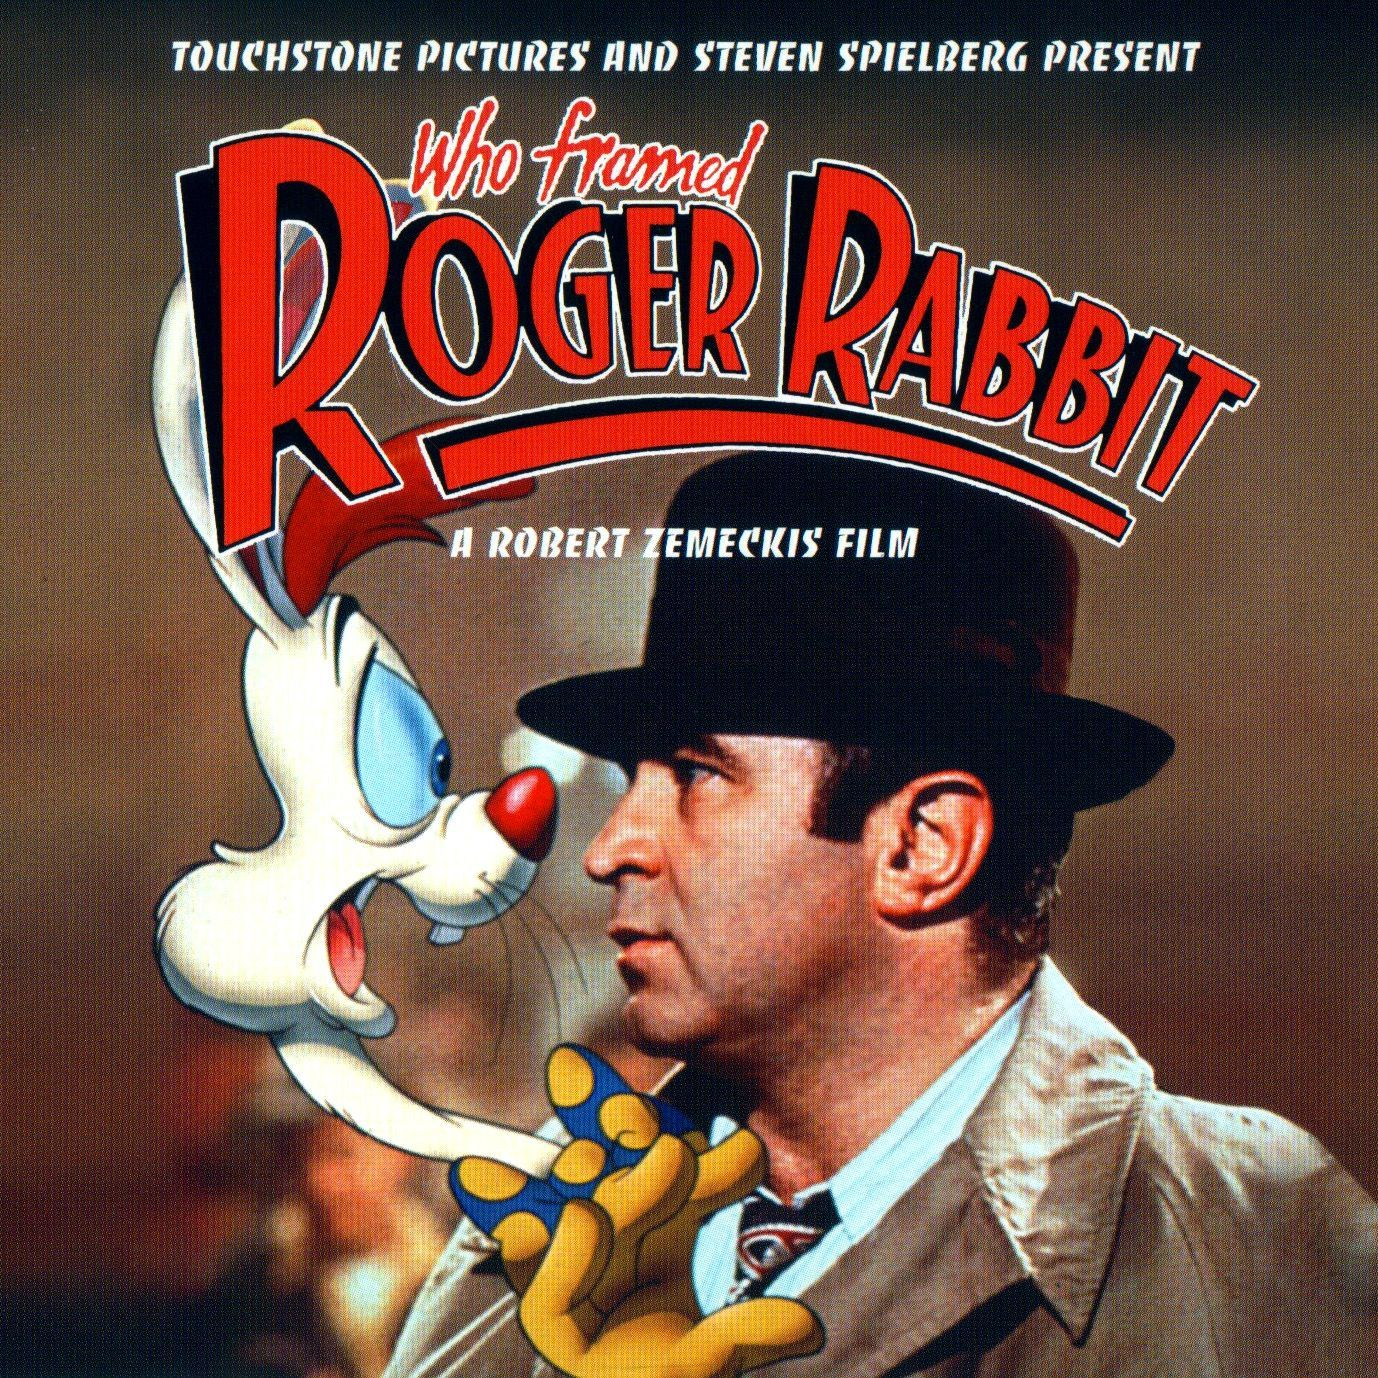 Who Framed Roger Rabbit 1988 English Subtitles | Frameswall.co